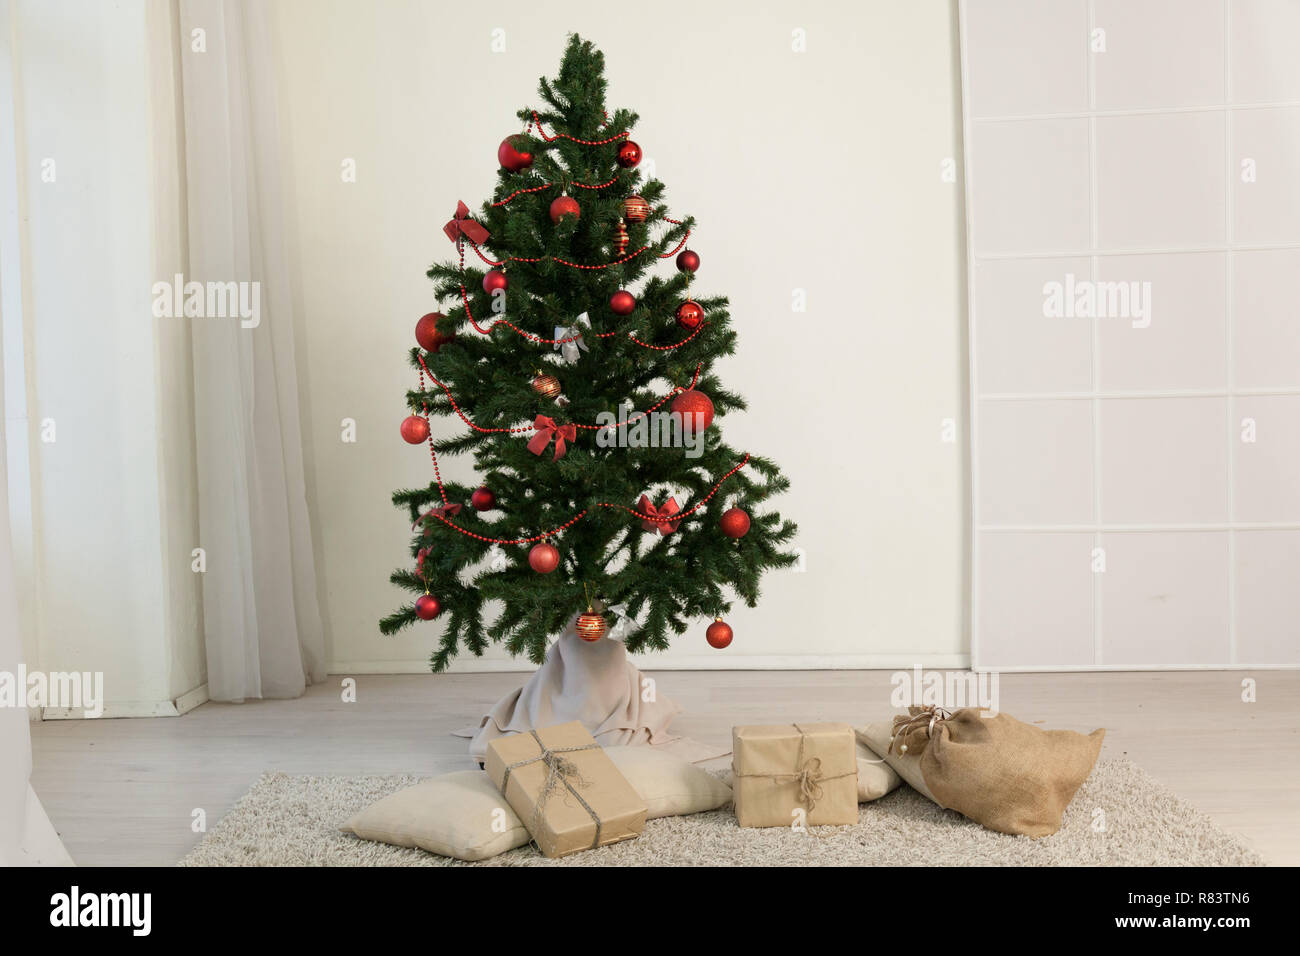 Christmas Home Interior Christmas tree with gifts holiday new year winter - Stock Image